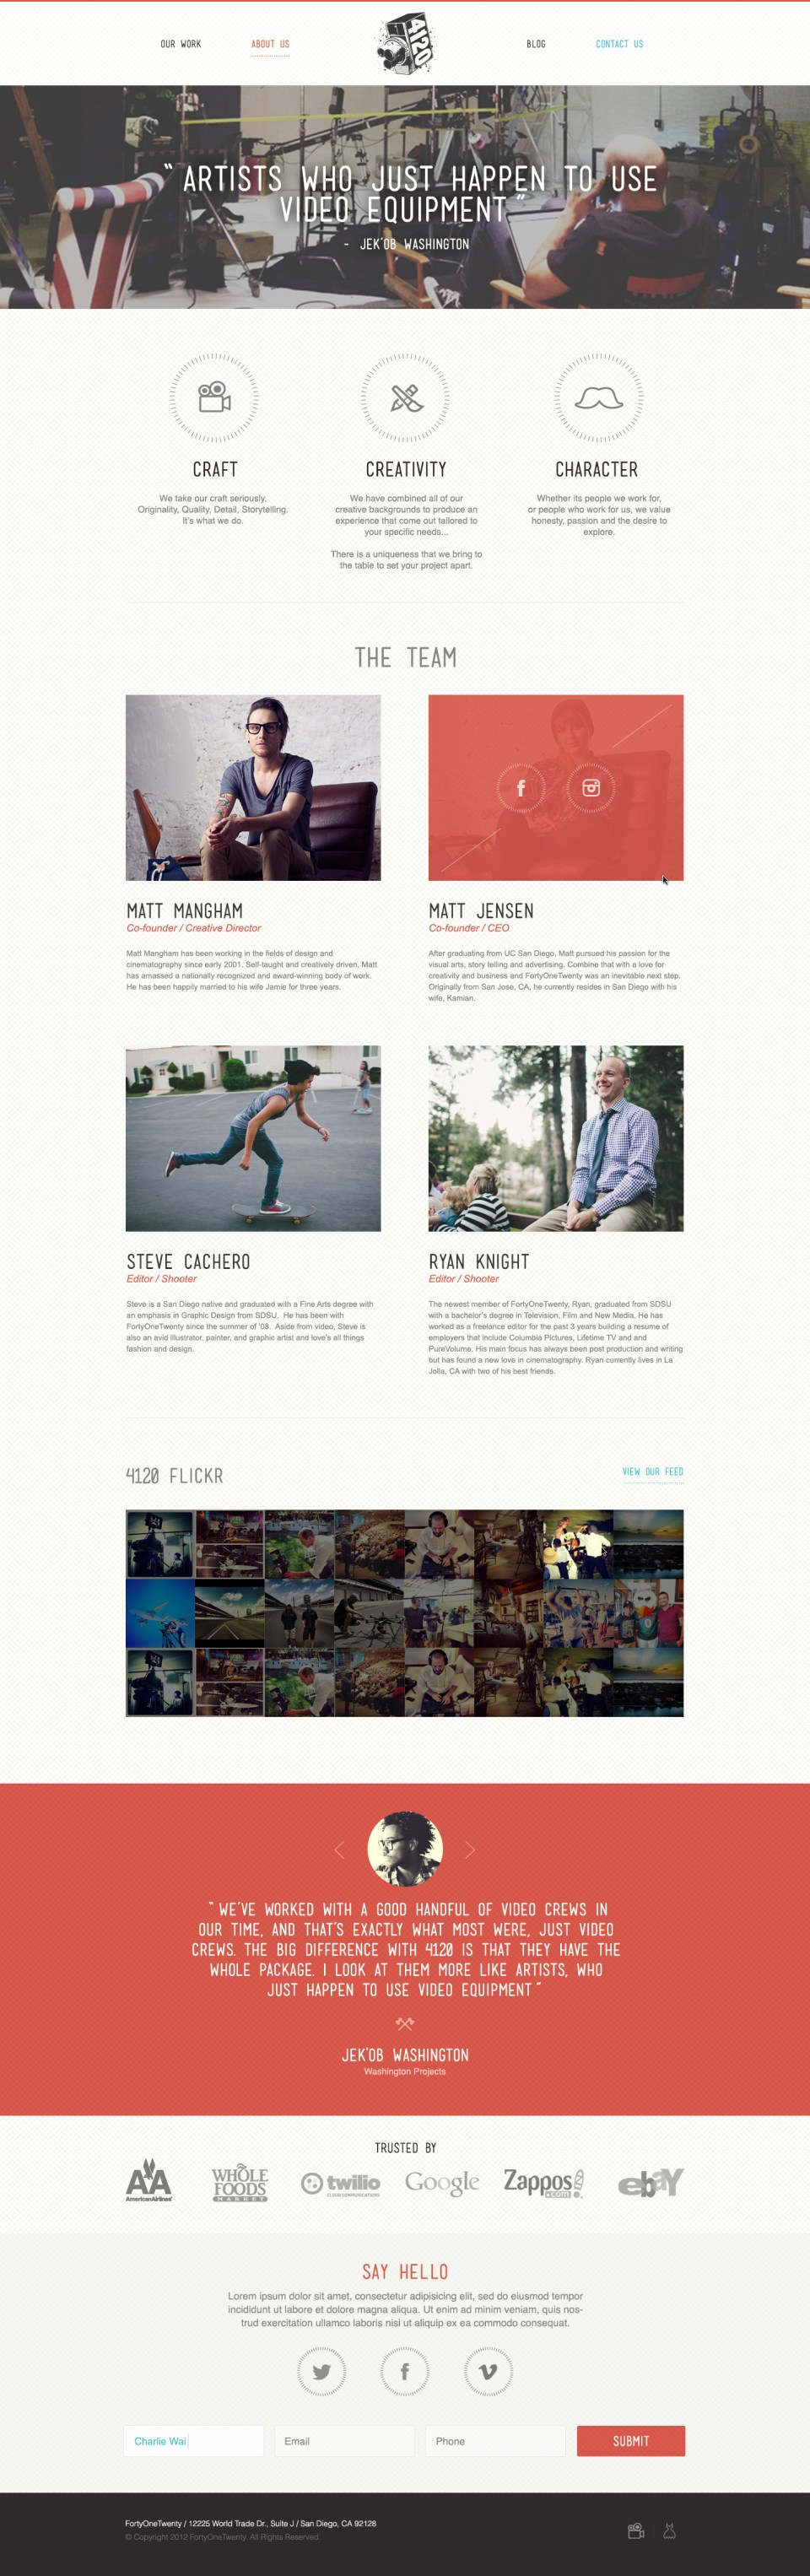 4120 about 15 Beautiful Examples of Web Design Inspiration | Part 3